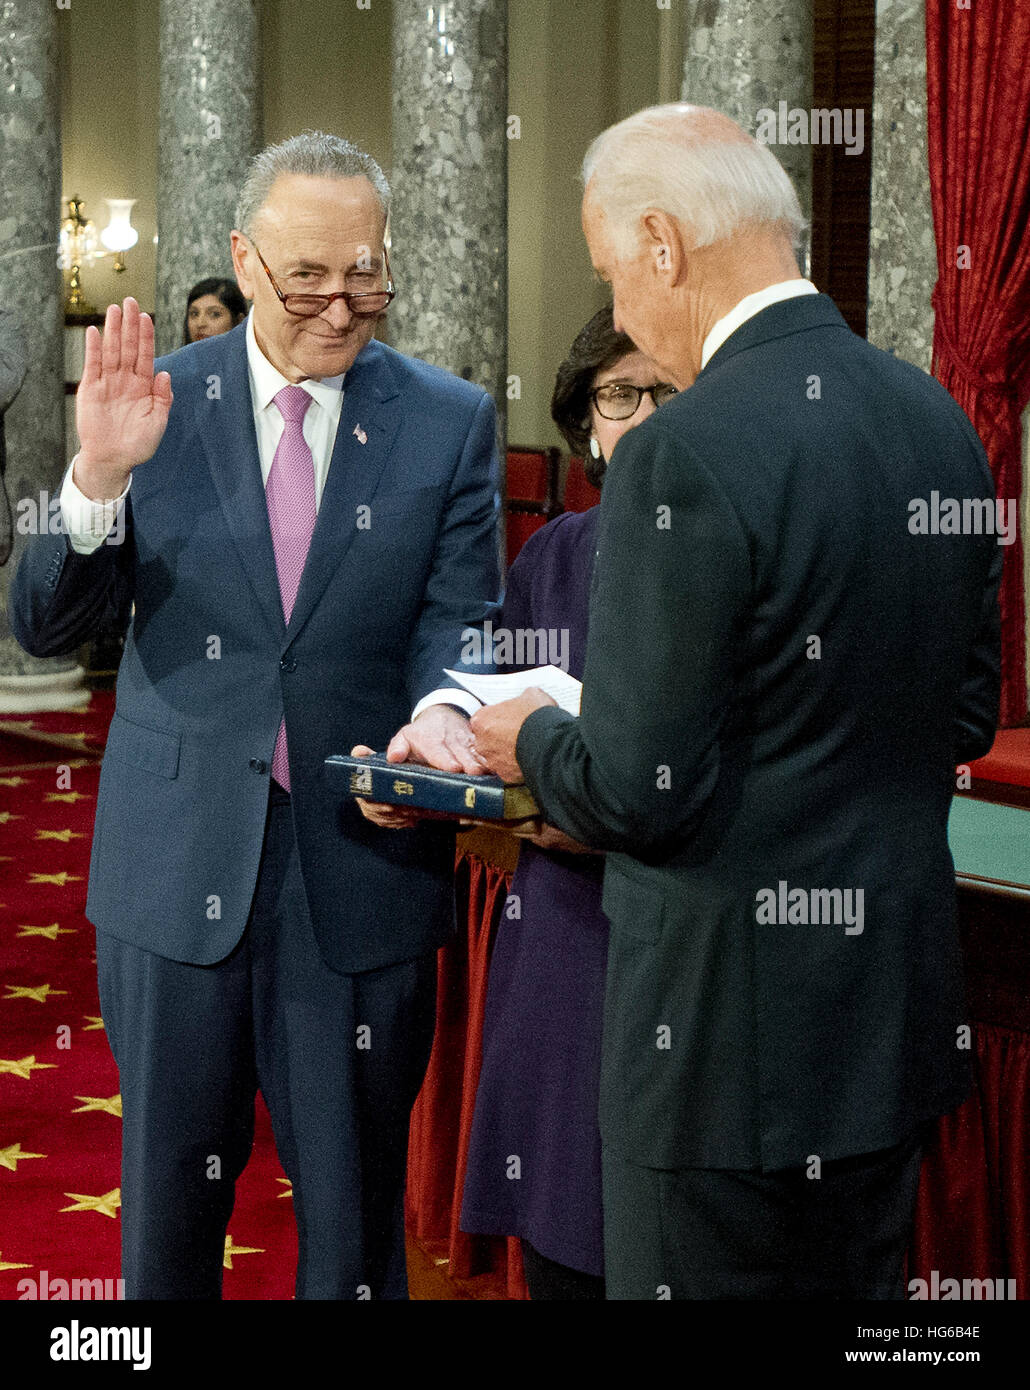 Weinshall High Resolution Stock Photography And Images Alamy At the young age of 24, he was elected to the new york state assembly. https www alamy com stock photo united states vice president joe biden right administers the oath 130447534 html